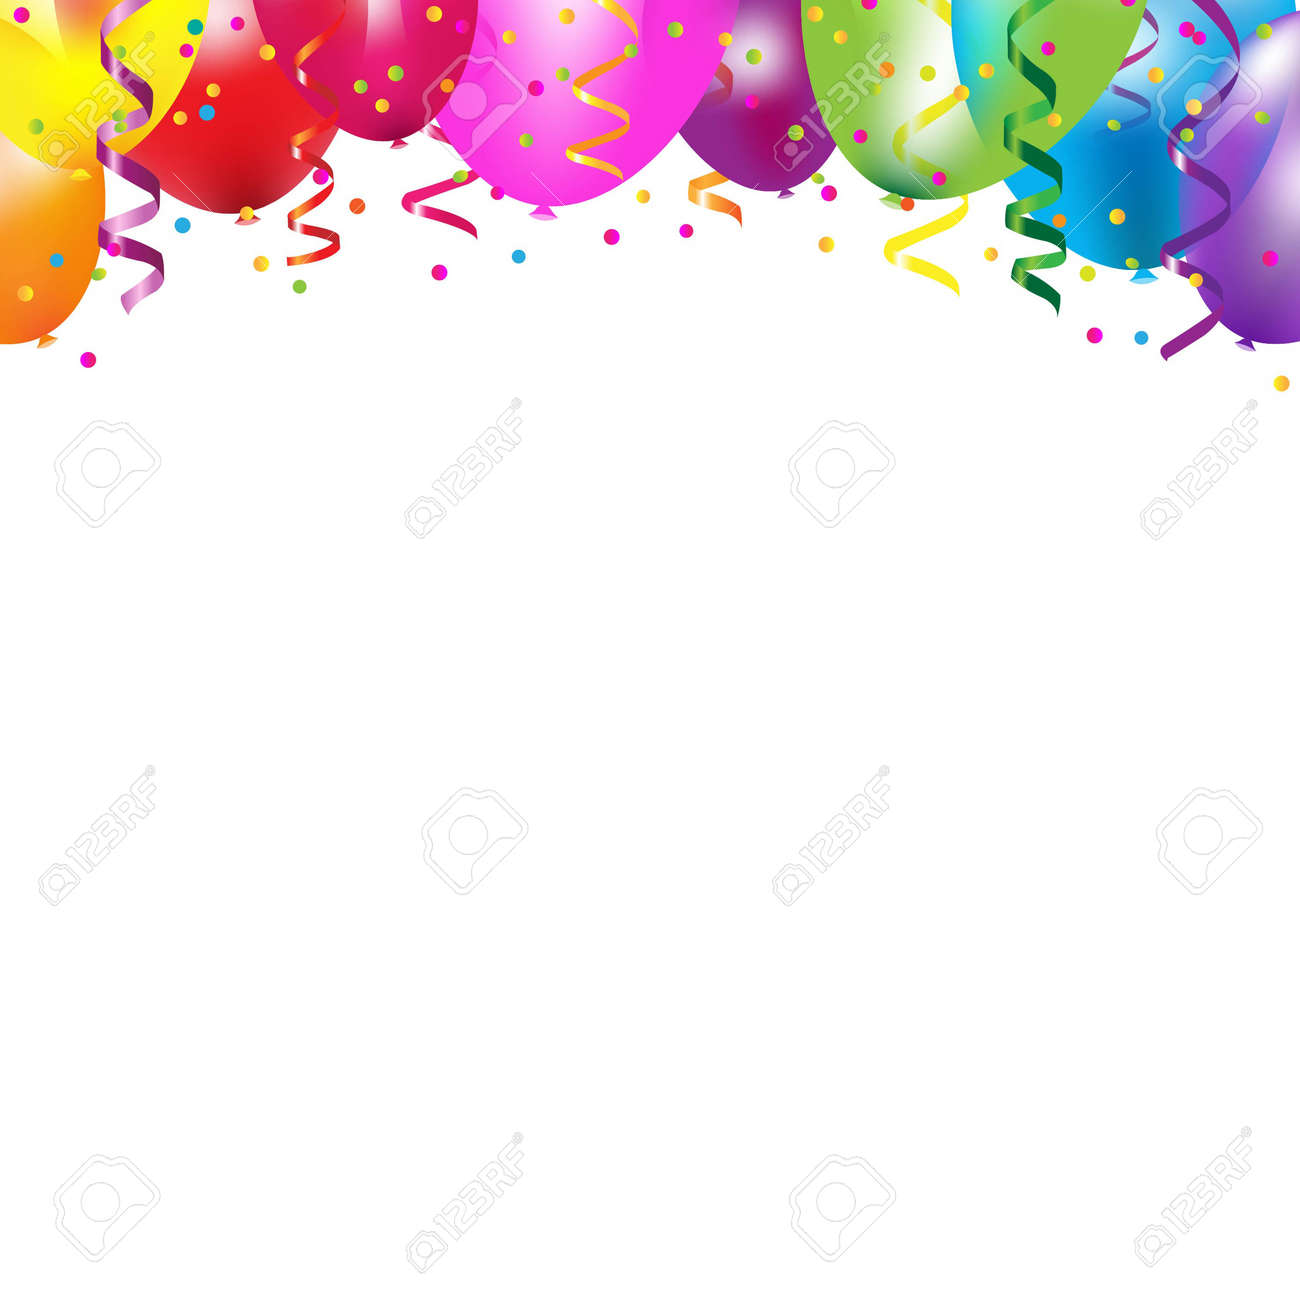 Frame With Colorful Balloons With Gradient Mesh, Vector Illustration - 21902880